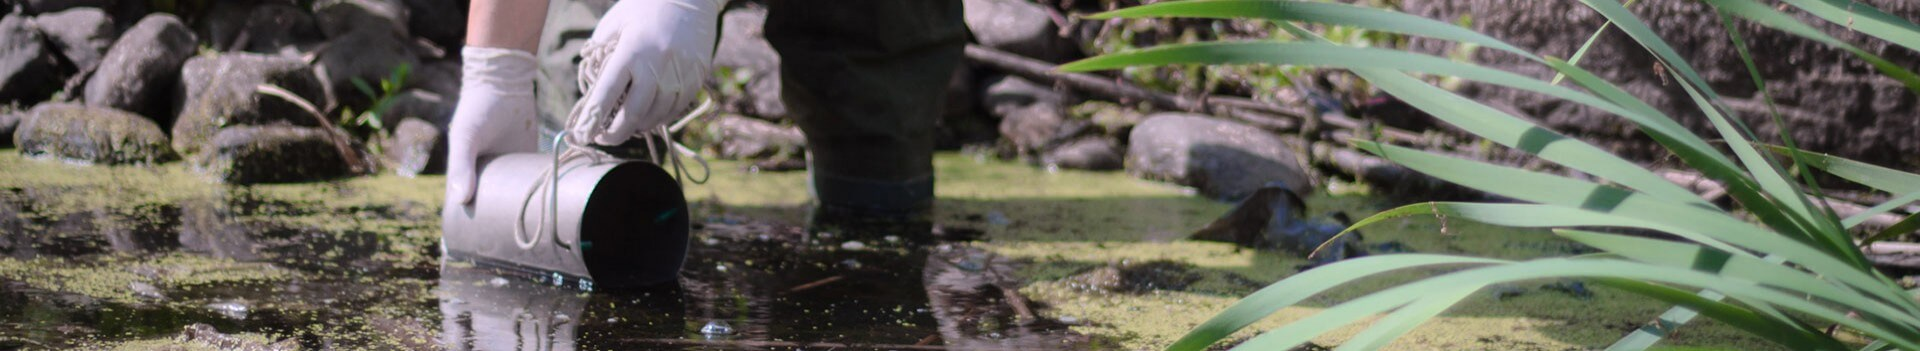 Person gathering a water sample from a stream